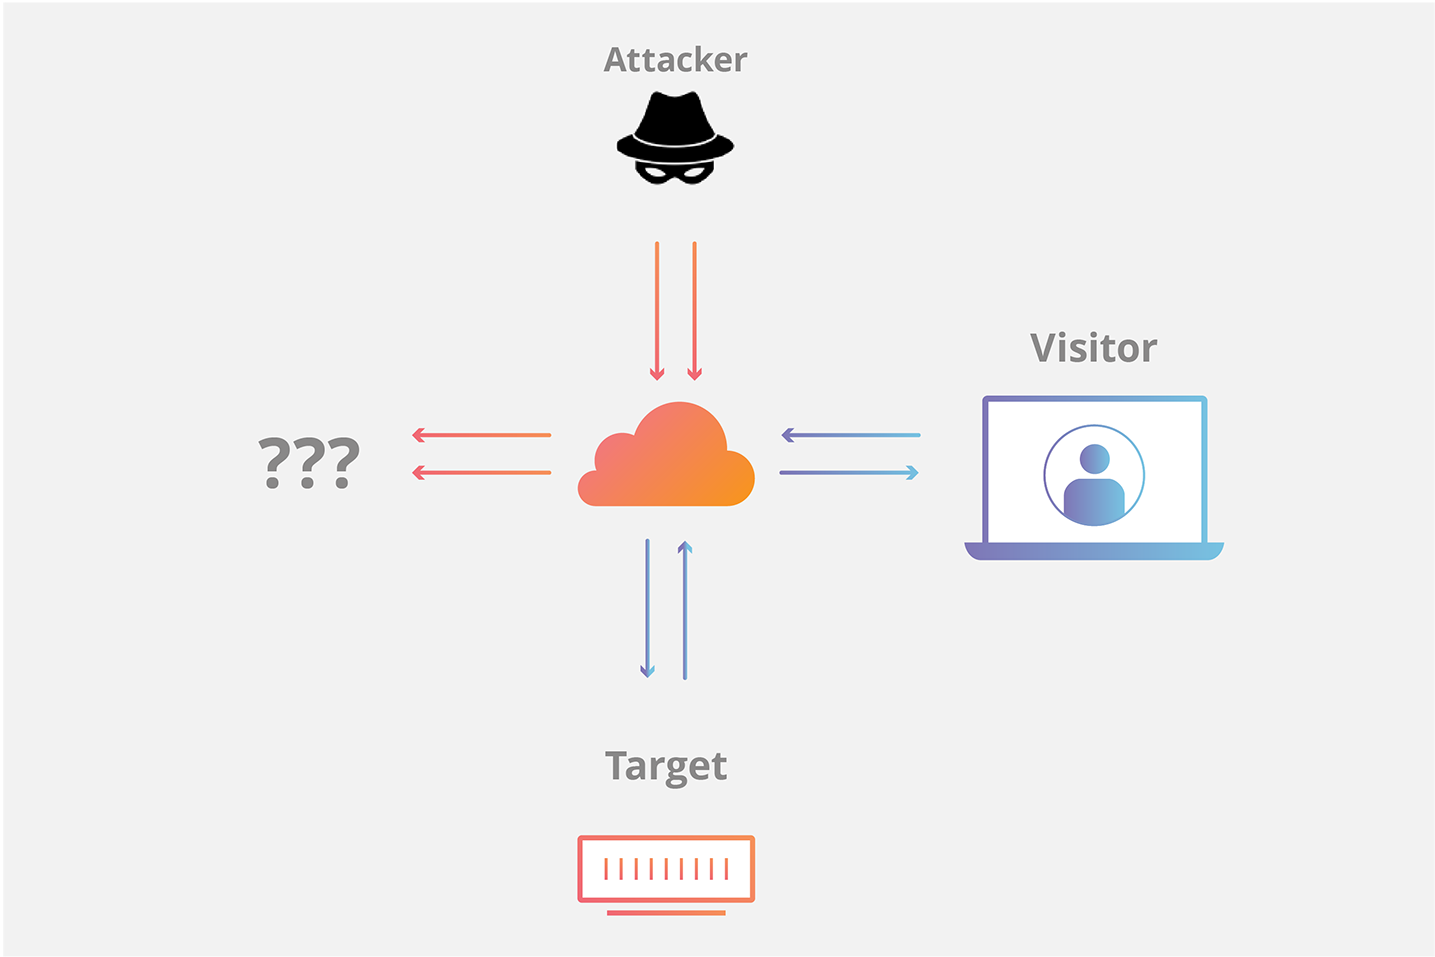 Cloudflare stops SYN Flood attacks diagram